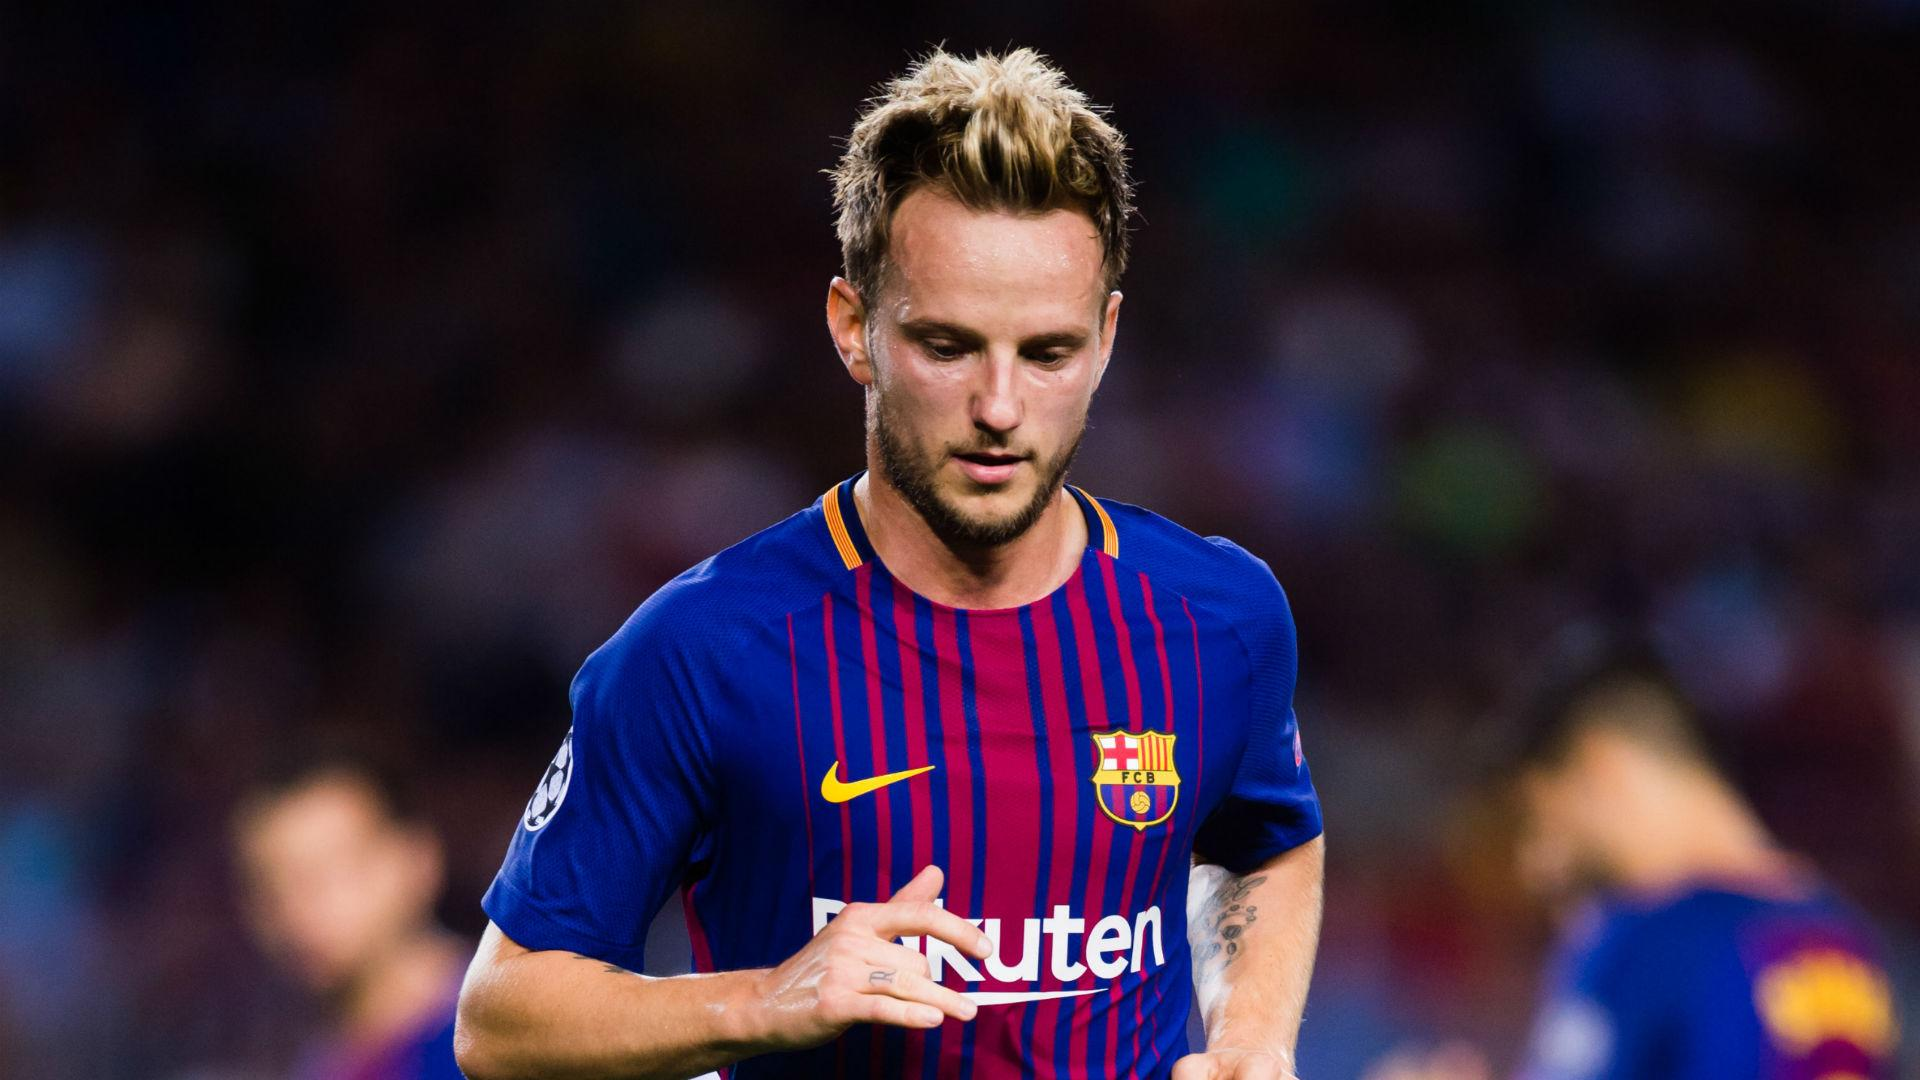 ernesto valverde with Barcelona Team News Rakitic Benched 174111132 on Lionel Messi Is A Treasure 1822307015 besides Argentina Want Messi Play Less Barca additionally Barcelona Target Yerry Mina Scores Goal Return Injury Amid Uncertainty Over January Move 1646100 moreover Barcelona Players Inform Josep Maria Bartomeu  plete Signing Liverpool Star Philippe Coutinho 1653690 as well Barcelonas January Signing Philippe Coutinho Not Worth 142m Says Liverpool Legend Jamie 1658550.